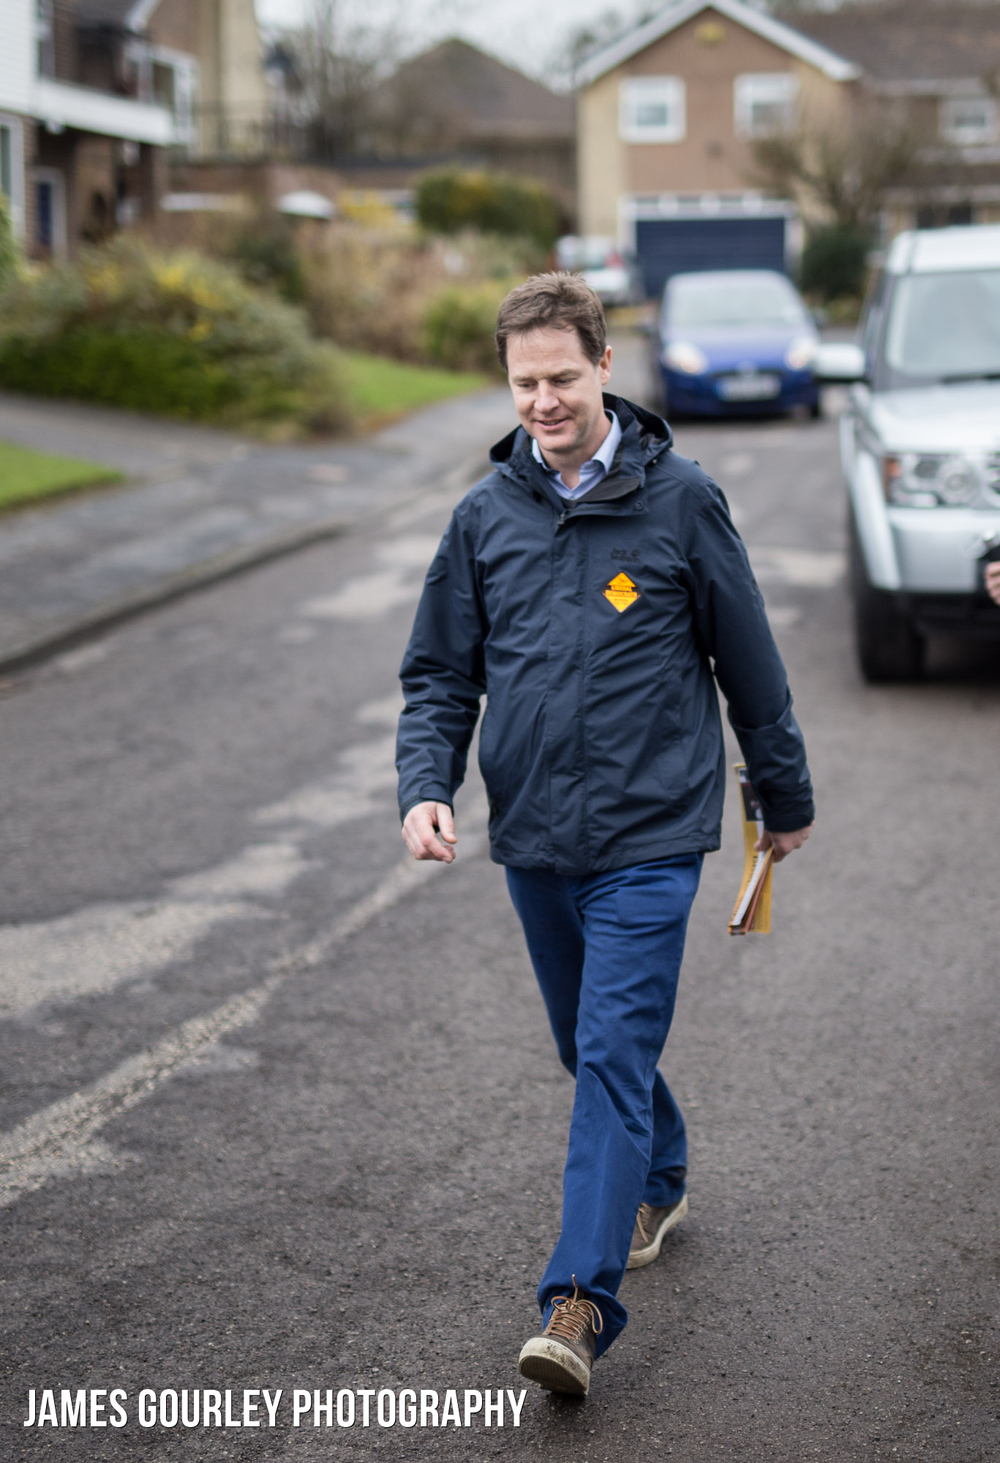 03/04/2015. Sheffield, UK. The Deputy Prime Minister and Leader of the Liberal Democrats Nick Clegg canvassing in Sheffield Hallam. Photo by James Gourley/Liberal Democrats